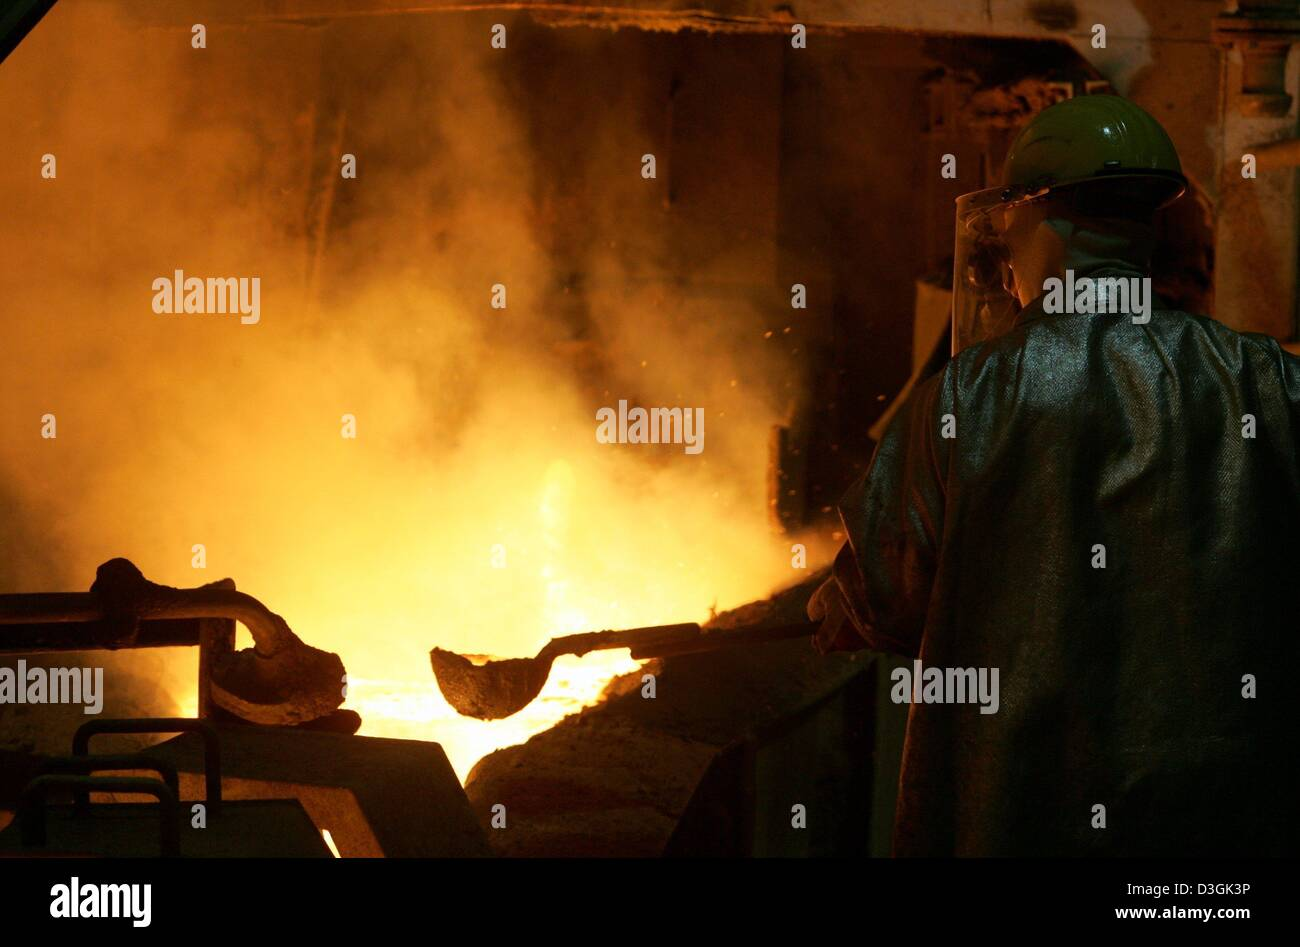 Copper Recycling Stockfotos & Copper Recycling Bilder - Alamy